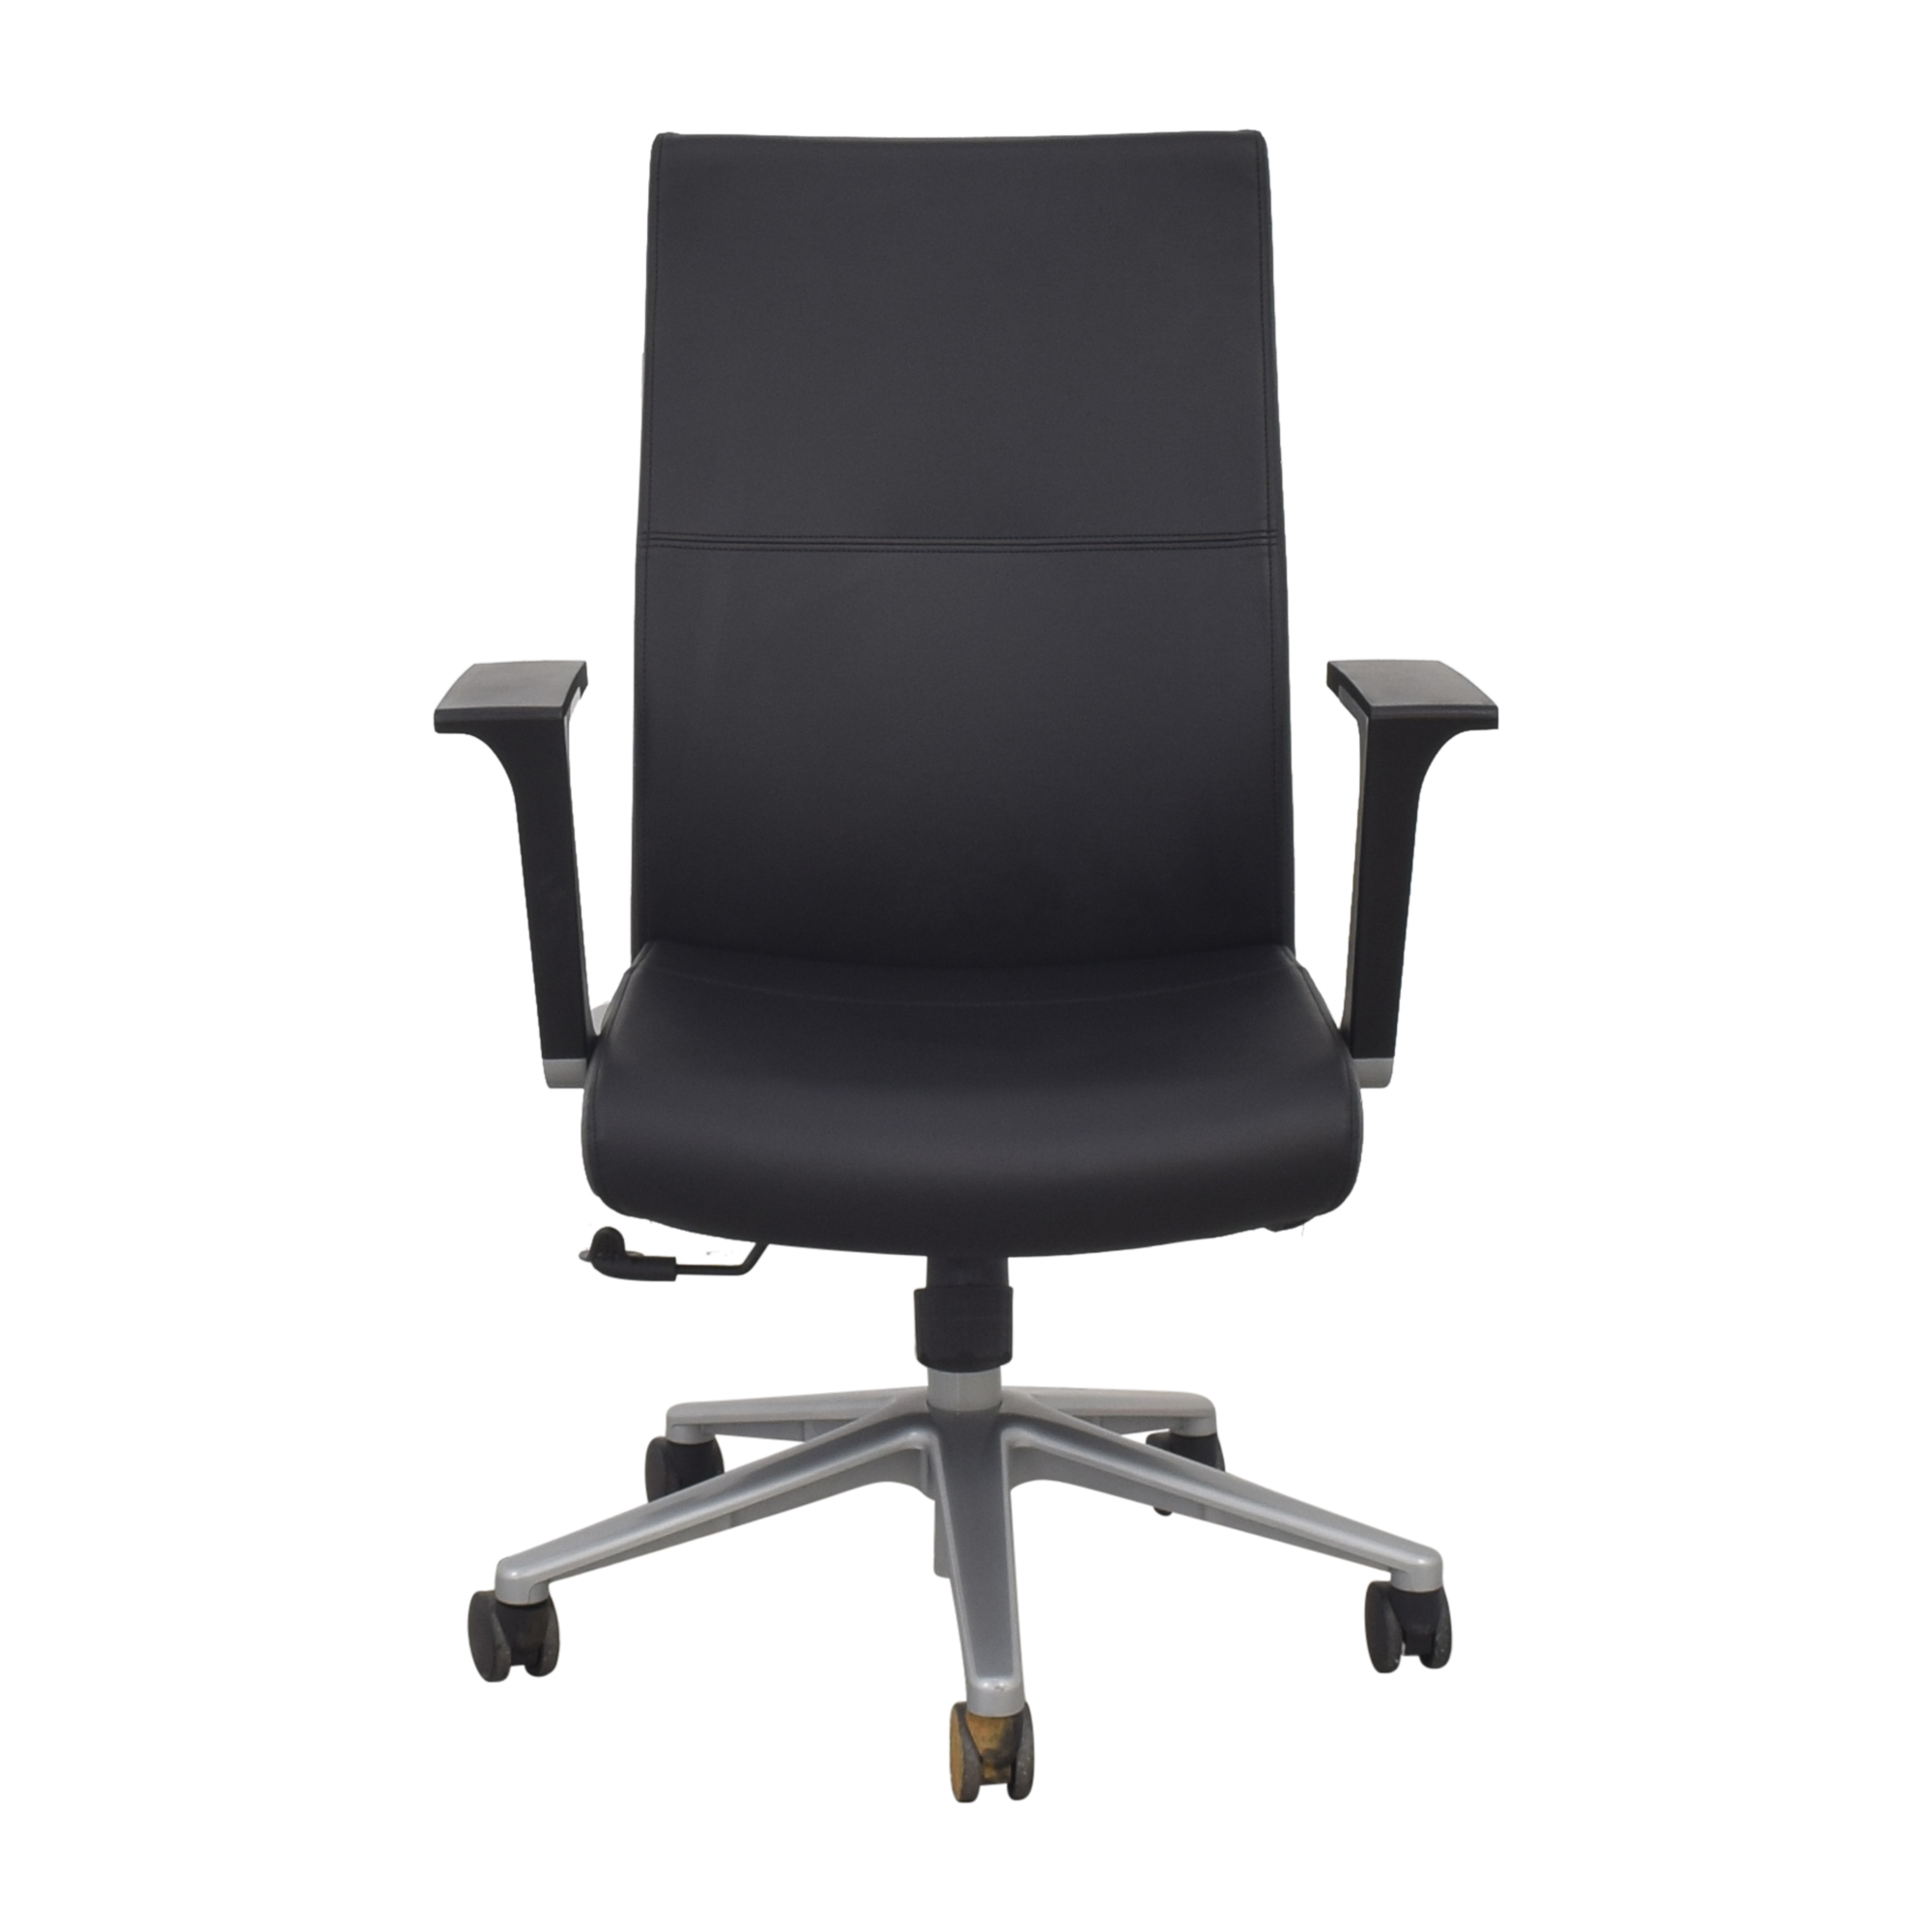 SitOnIt Prava Office Chair on sale